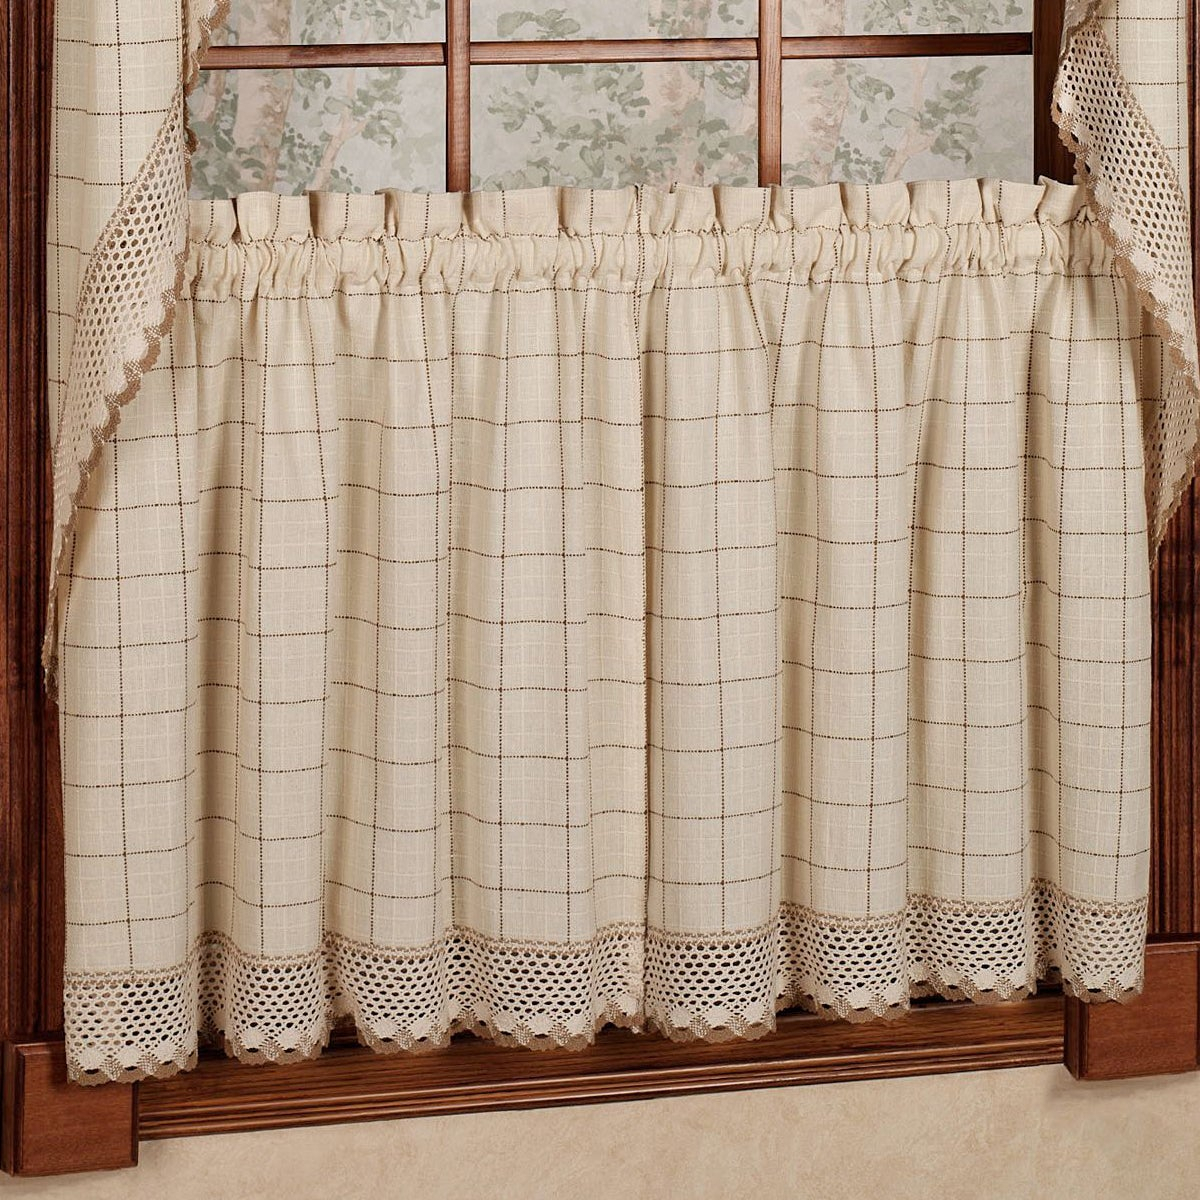 Cotton Classic Toast Window Pane Pattern And Crotchet Trim Tiers, Swags And Valance Options With Chocolate 5 Piece Curtain Tier And Swag Sets (View 10 of 20)